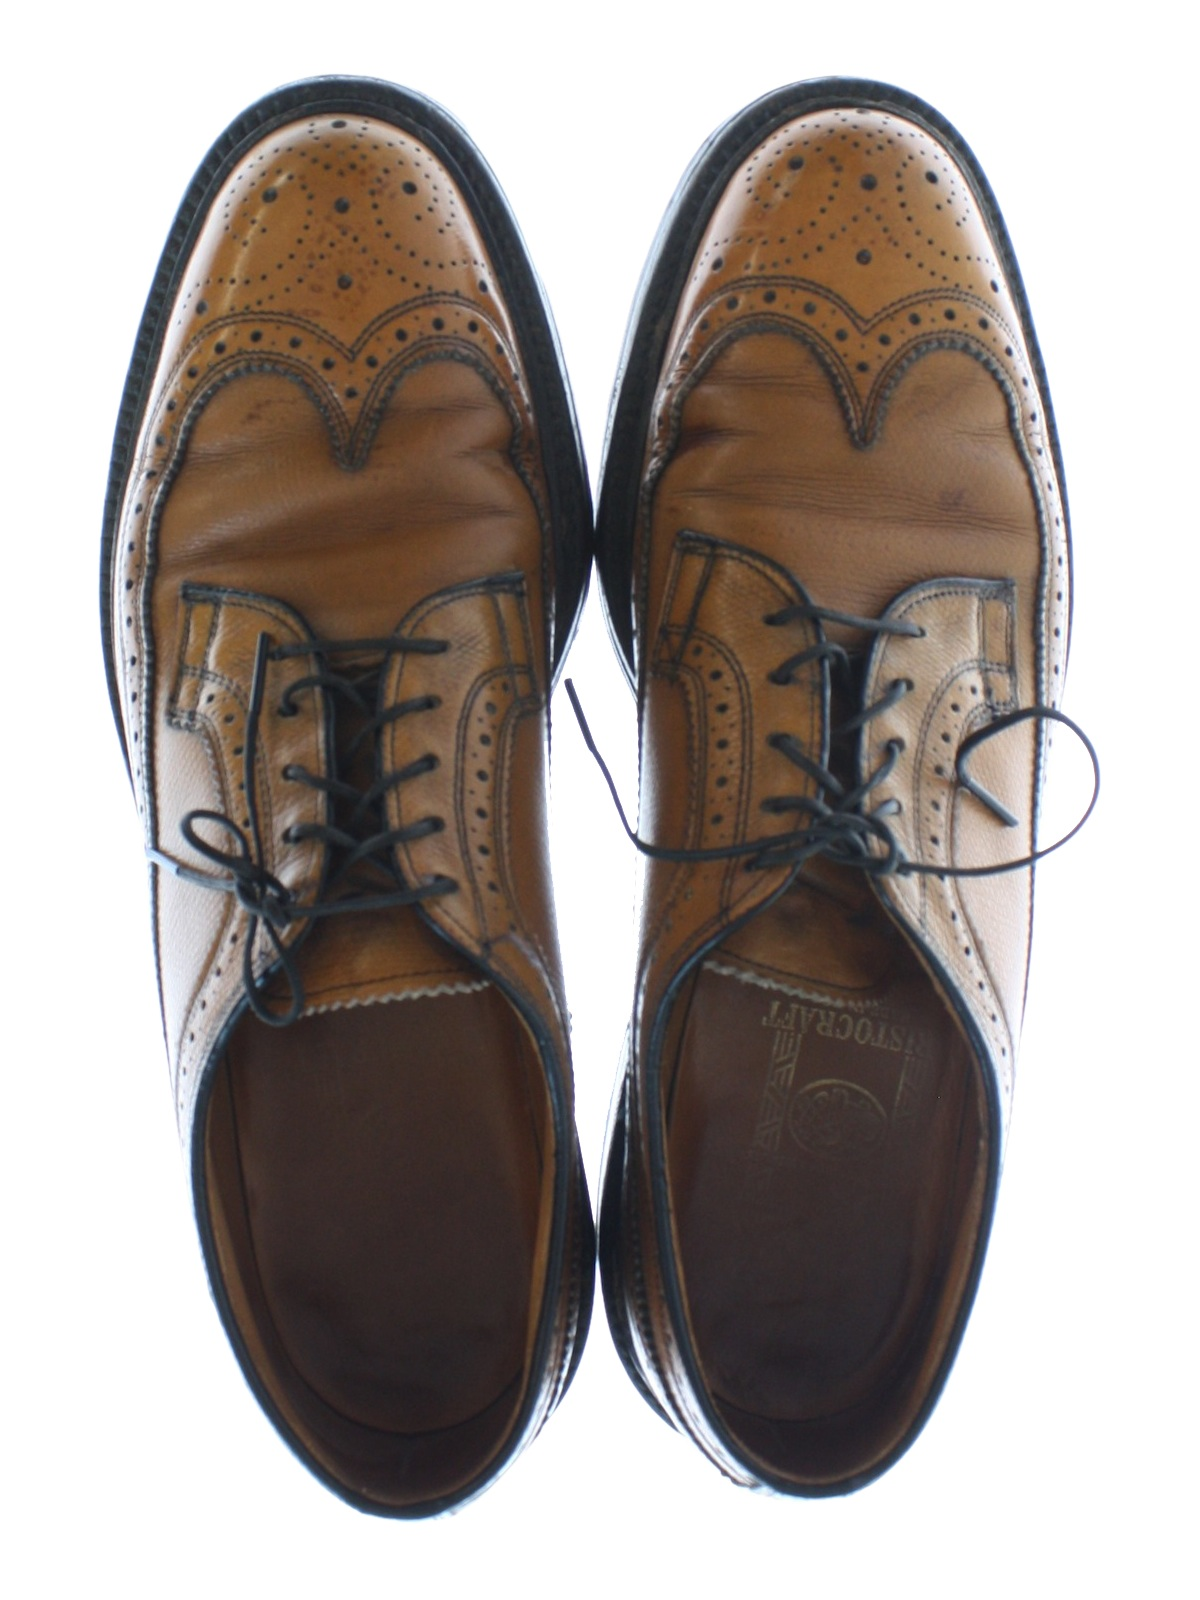 Brown Mens Leather Shoes Vintage